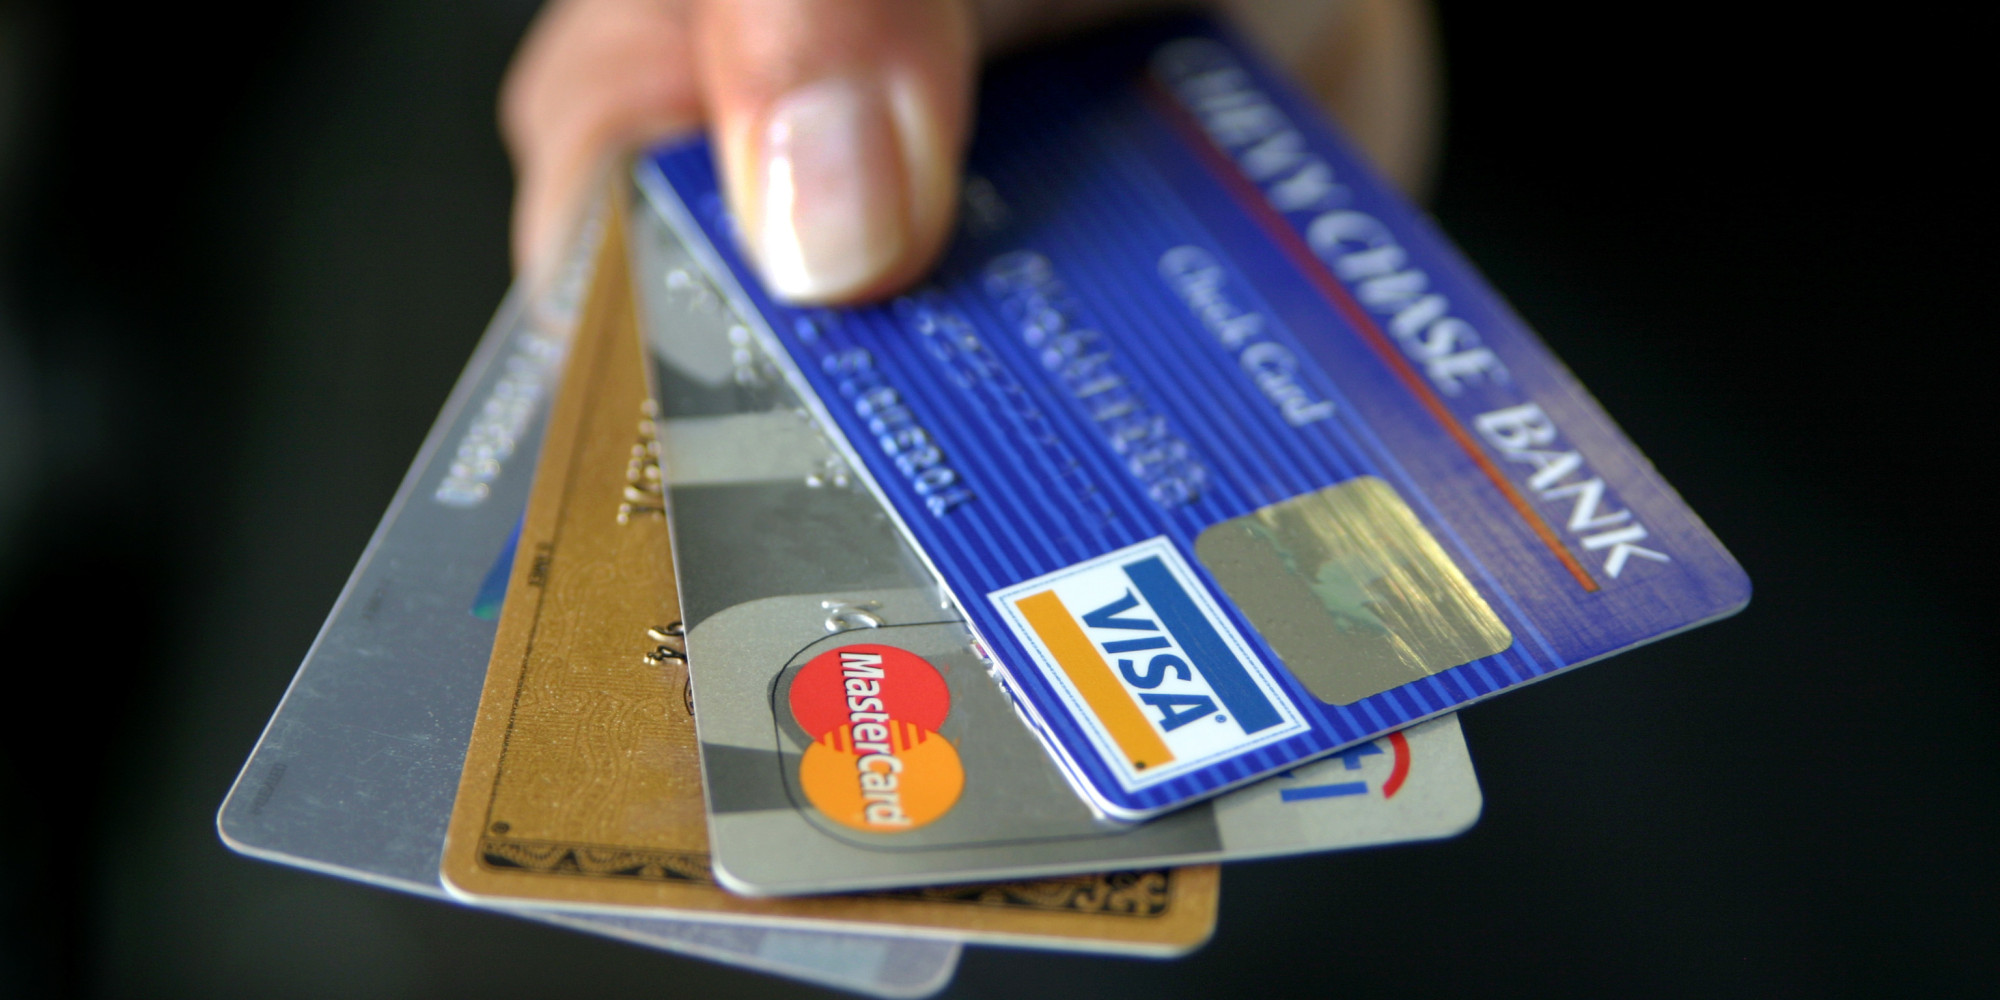 People love their debit cards: a big mistake - Michael Smeriglio